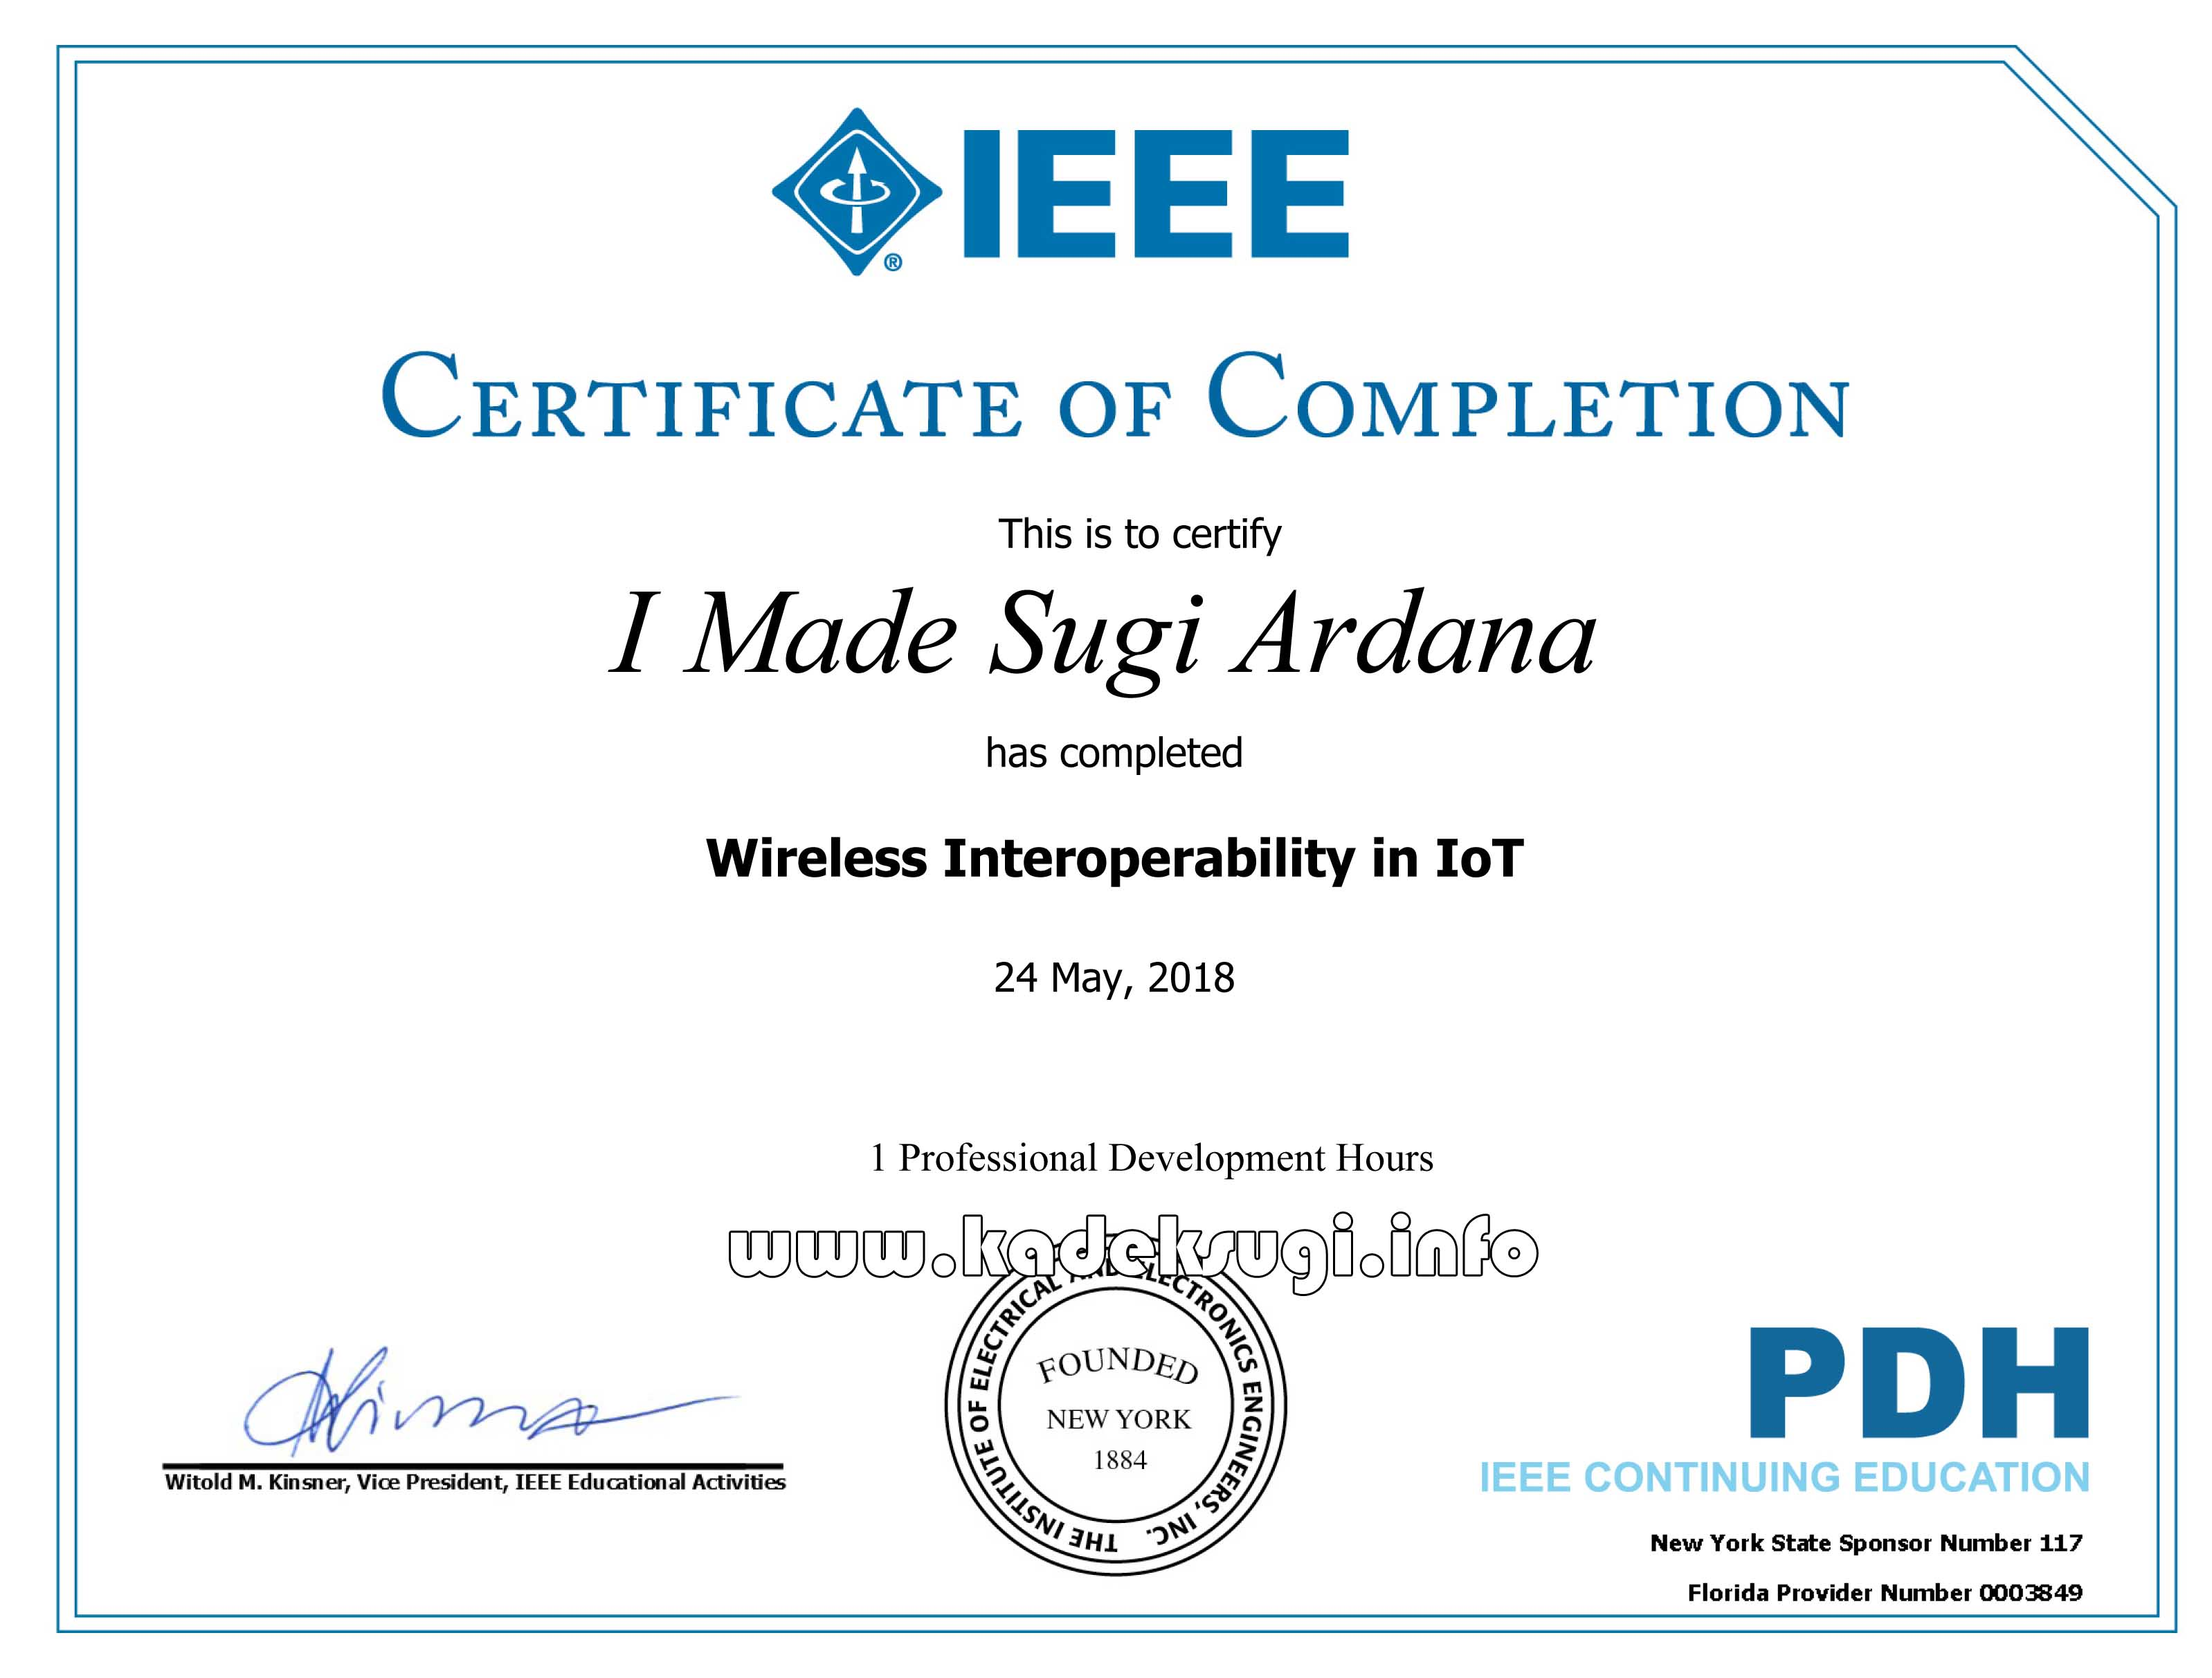 Certificate Wireless Interoperability in IoT-wm